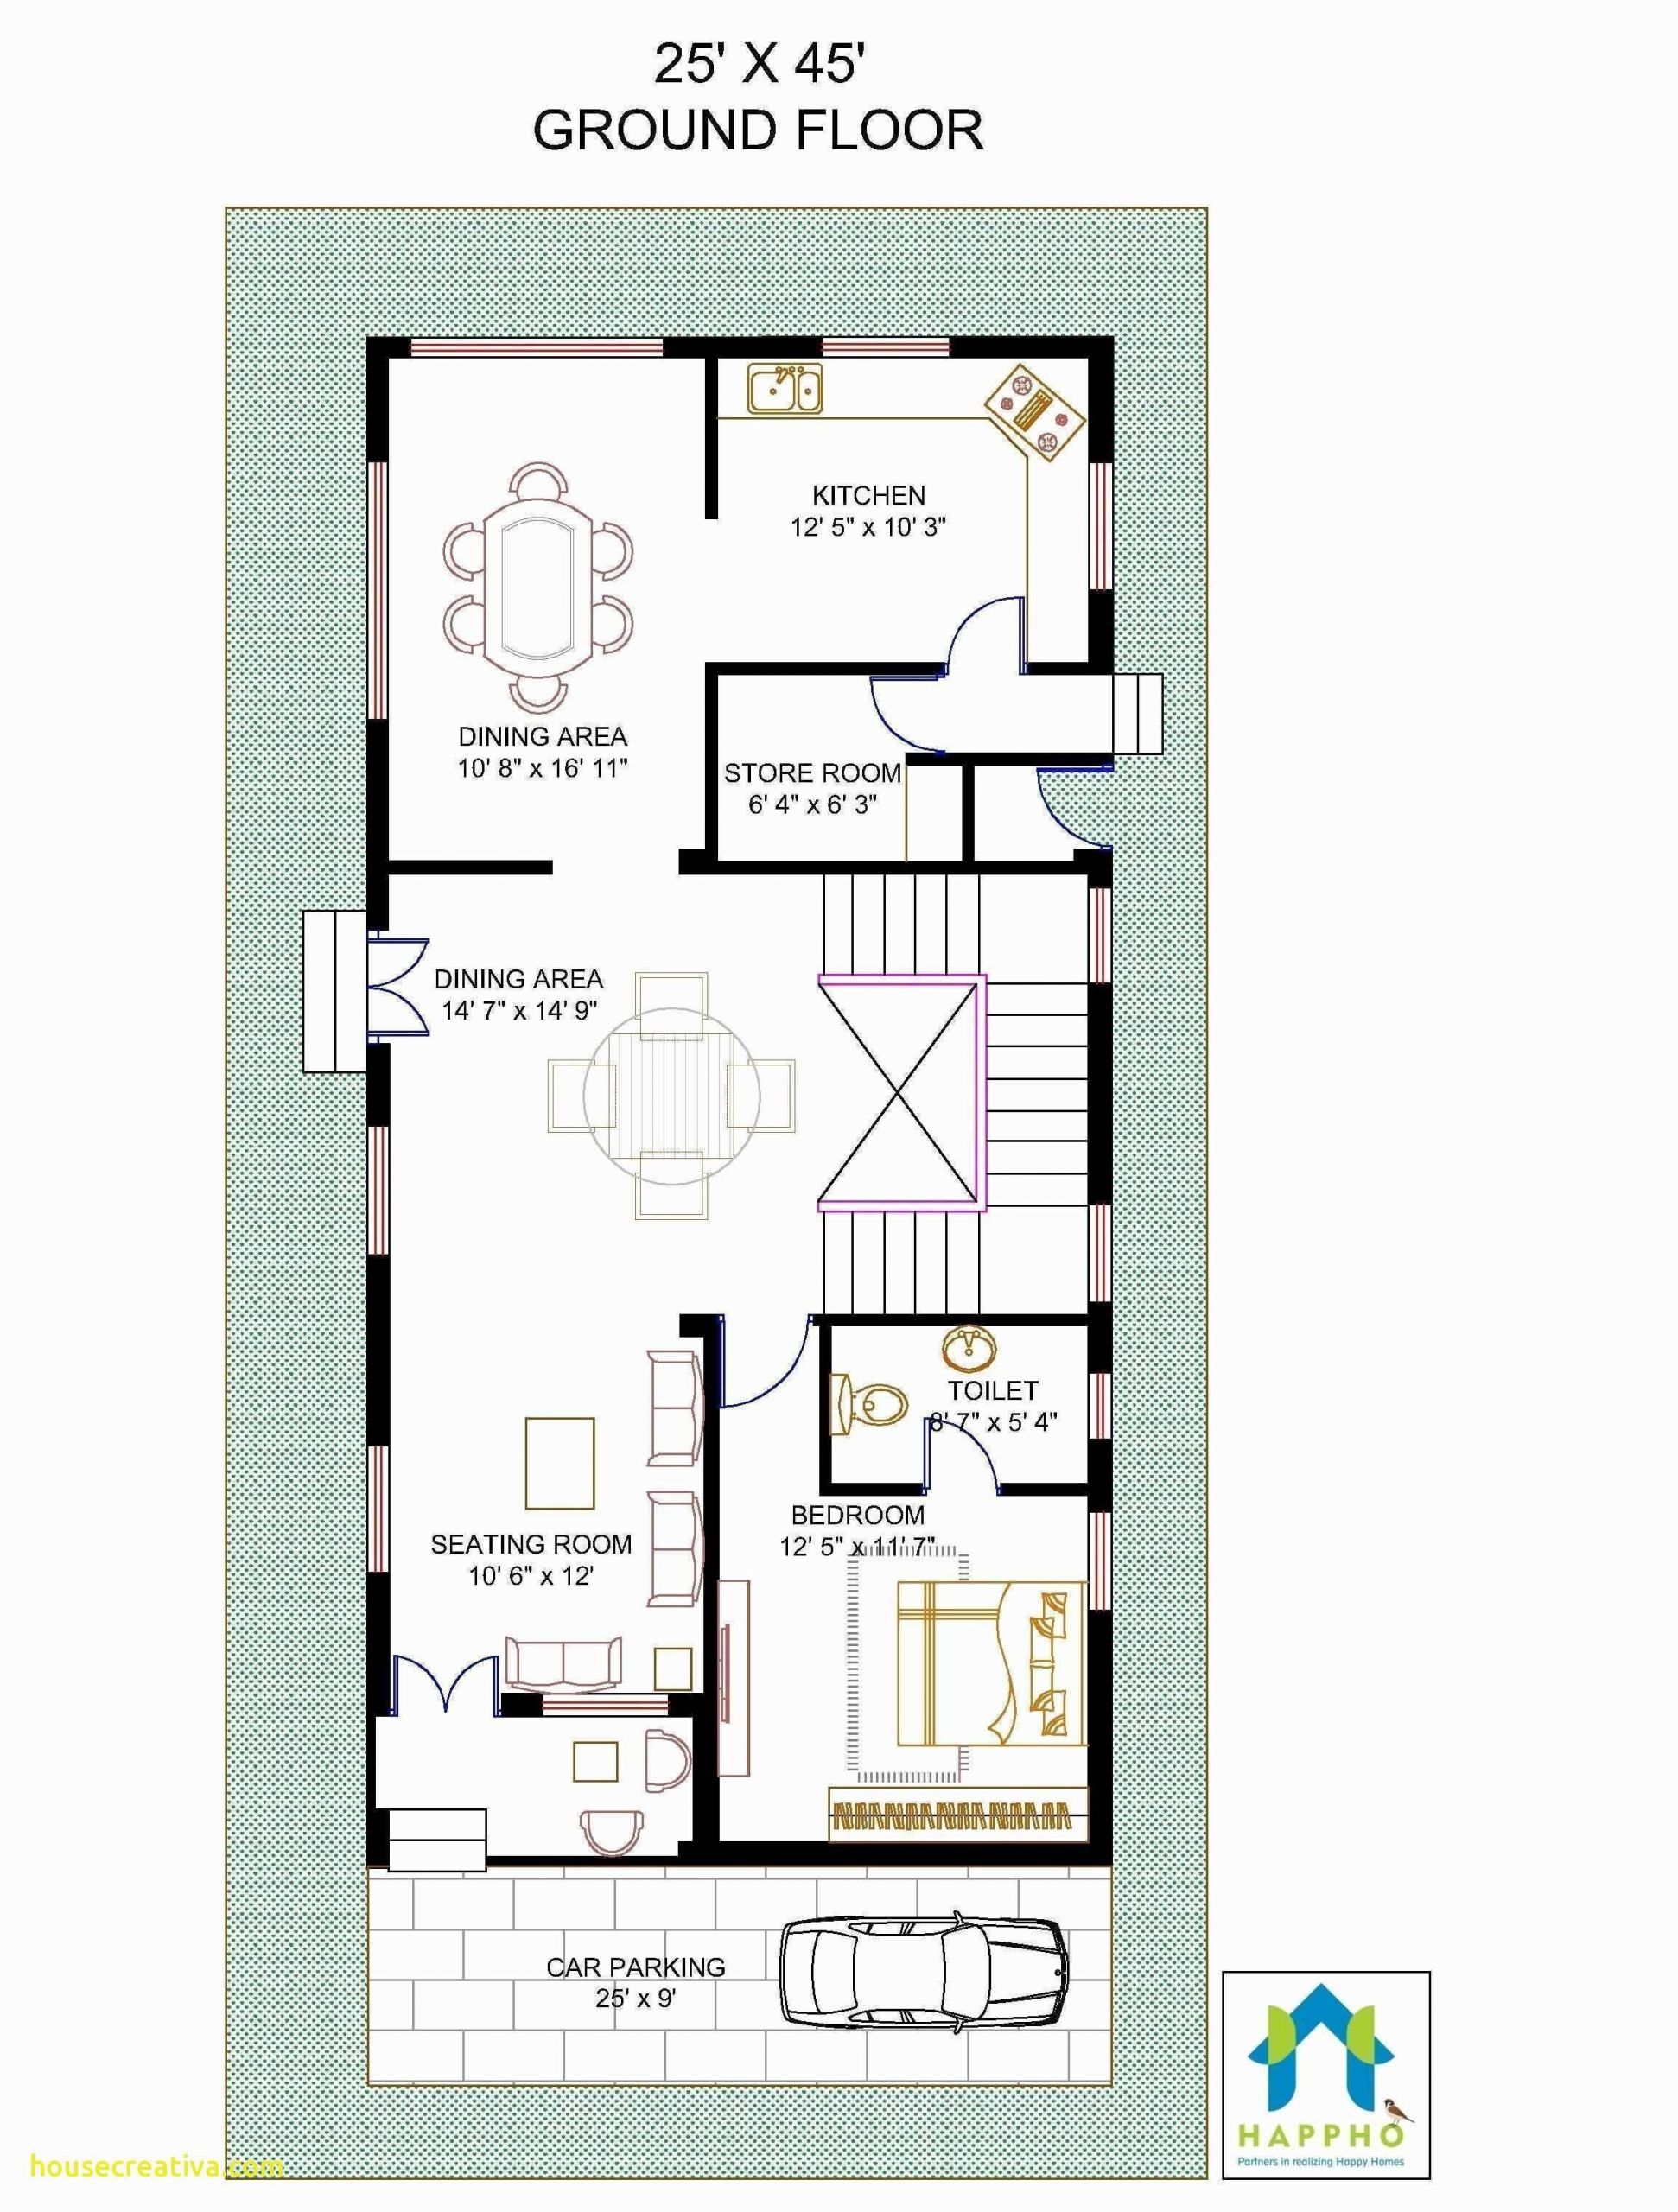 Beautiful Bhk Duplex House Plan New 1200 Sq Foot House Plans Unique 500 600 Sq Ft House Plans